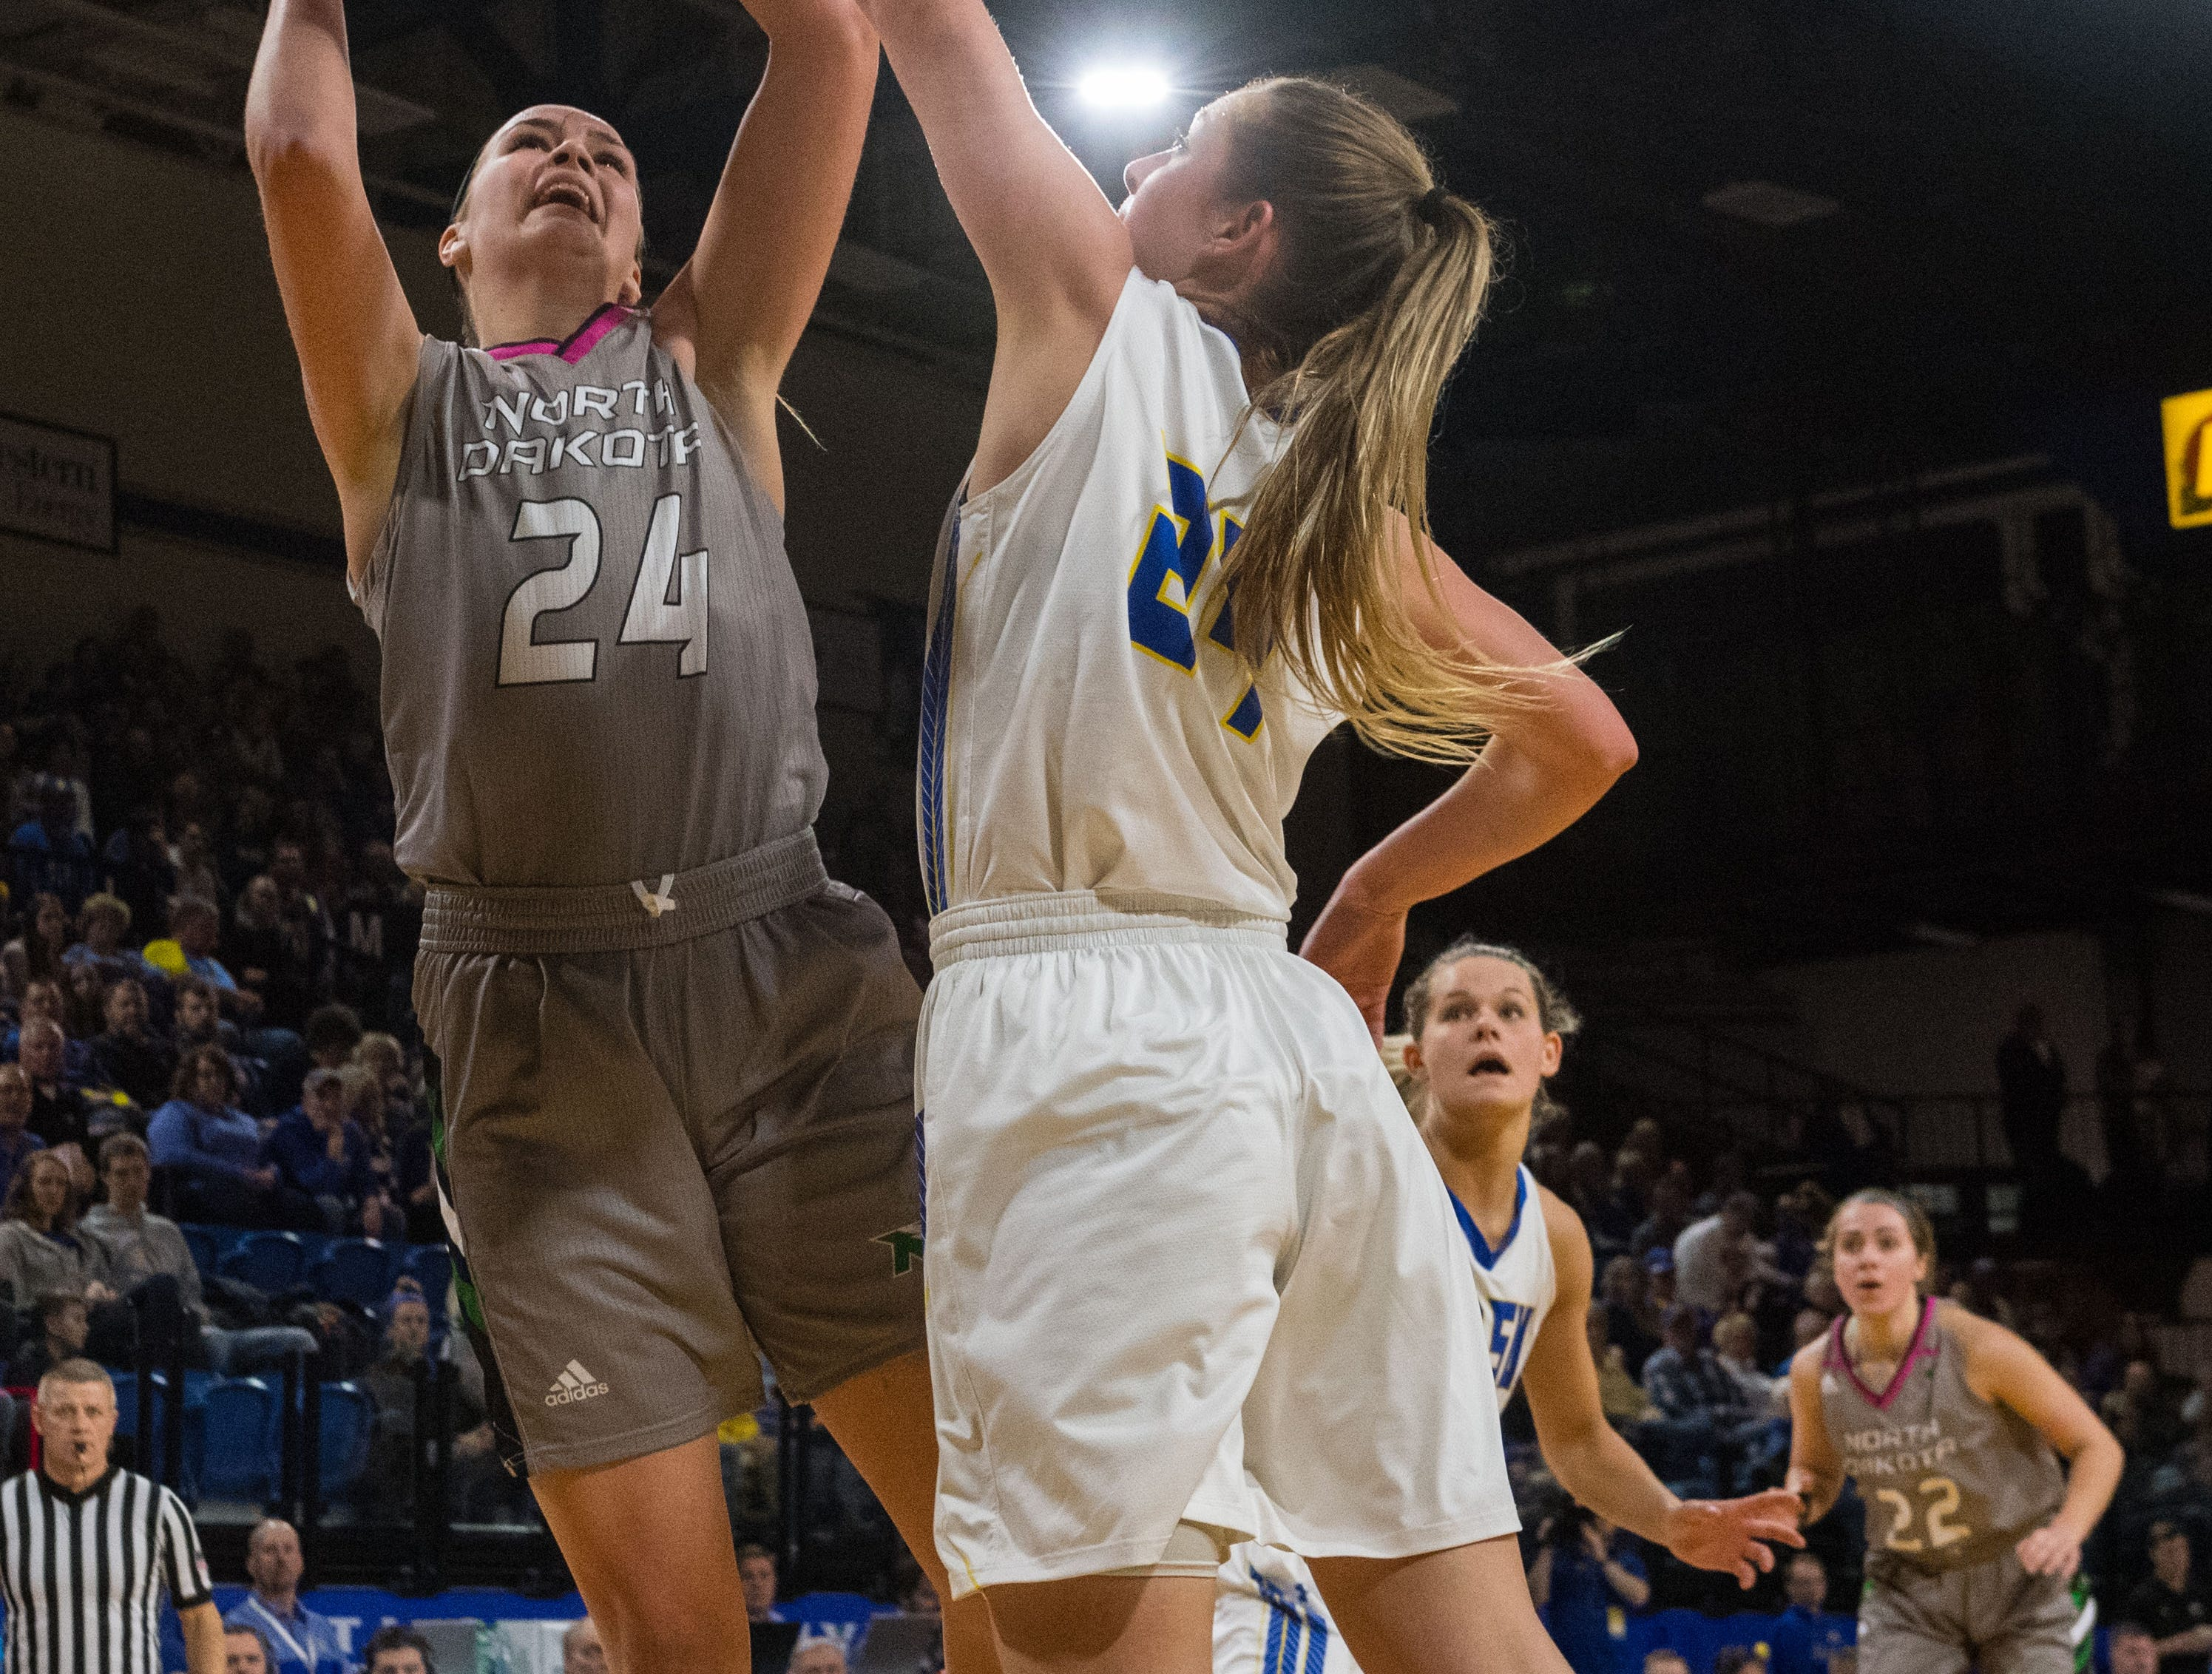 South Dakota State's Tagyn Larson (24) tries to block North Dakota's Julia Fleecs (24) from making a shot during a game in Brookings, S.D., Saturday, Feb. 9, 2019.